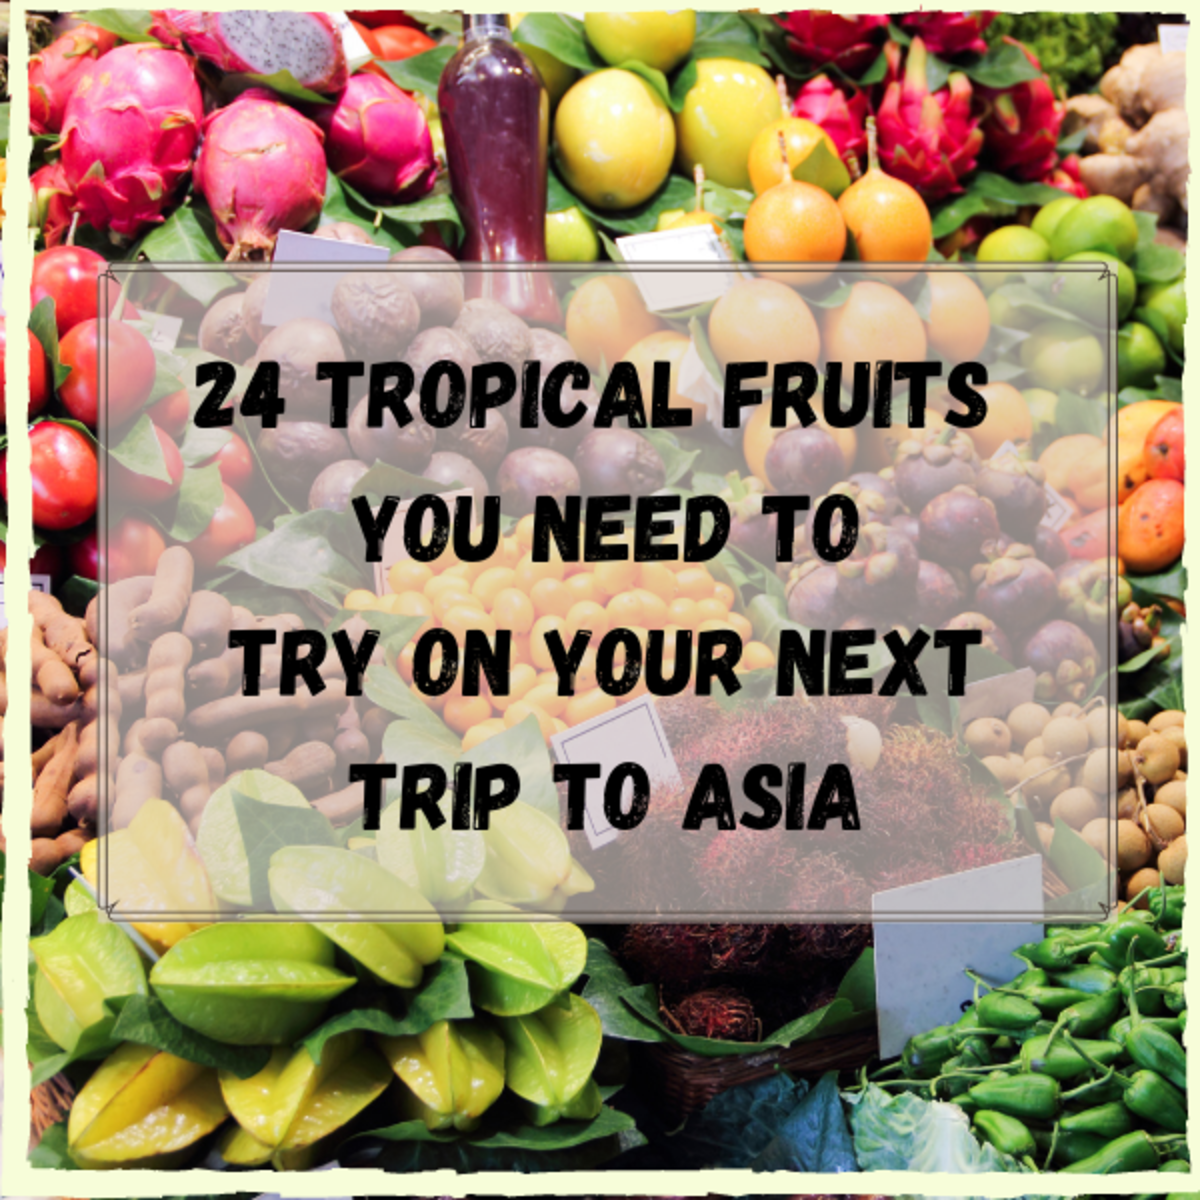 24 Tropical Fruits You Need to Try on Your Next Trip to Asia